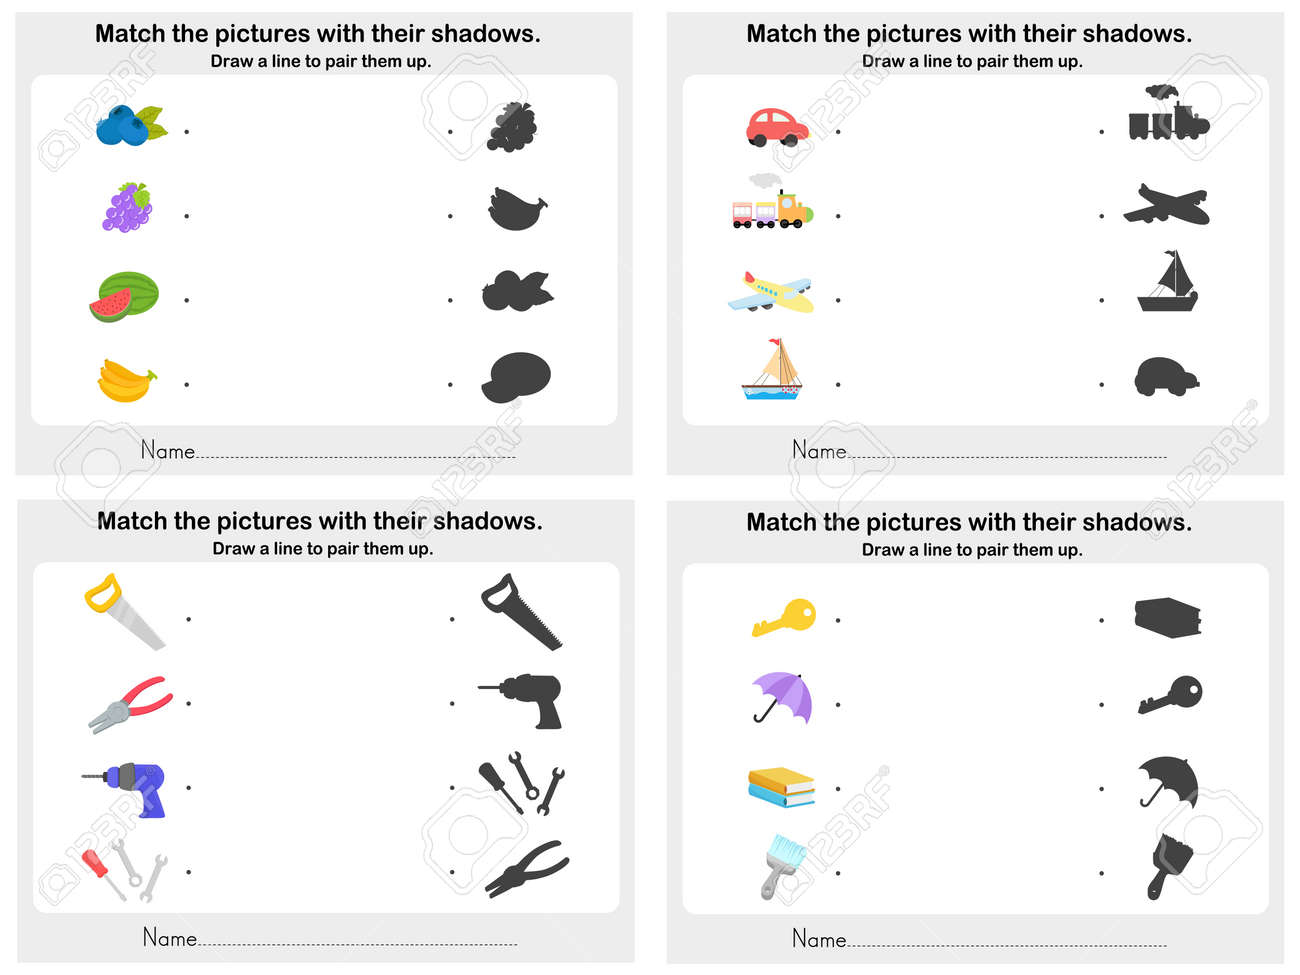 Workbooks worksheets on light and shadows : Match Object Shadow 4 Sheet - Worksheet For Education Royalty Free ...